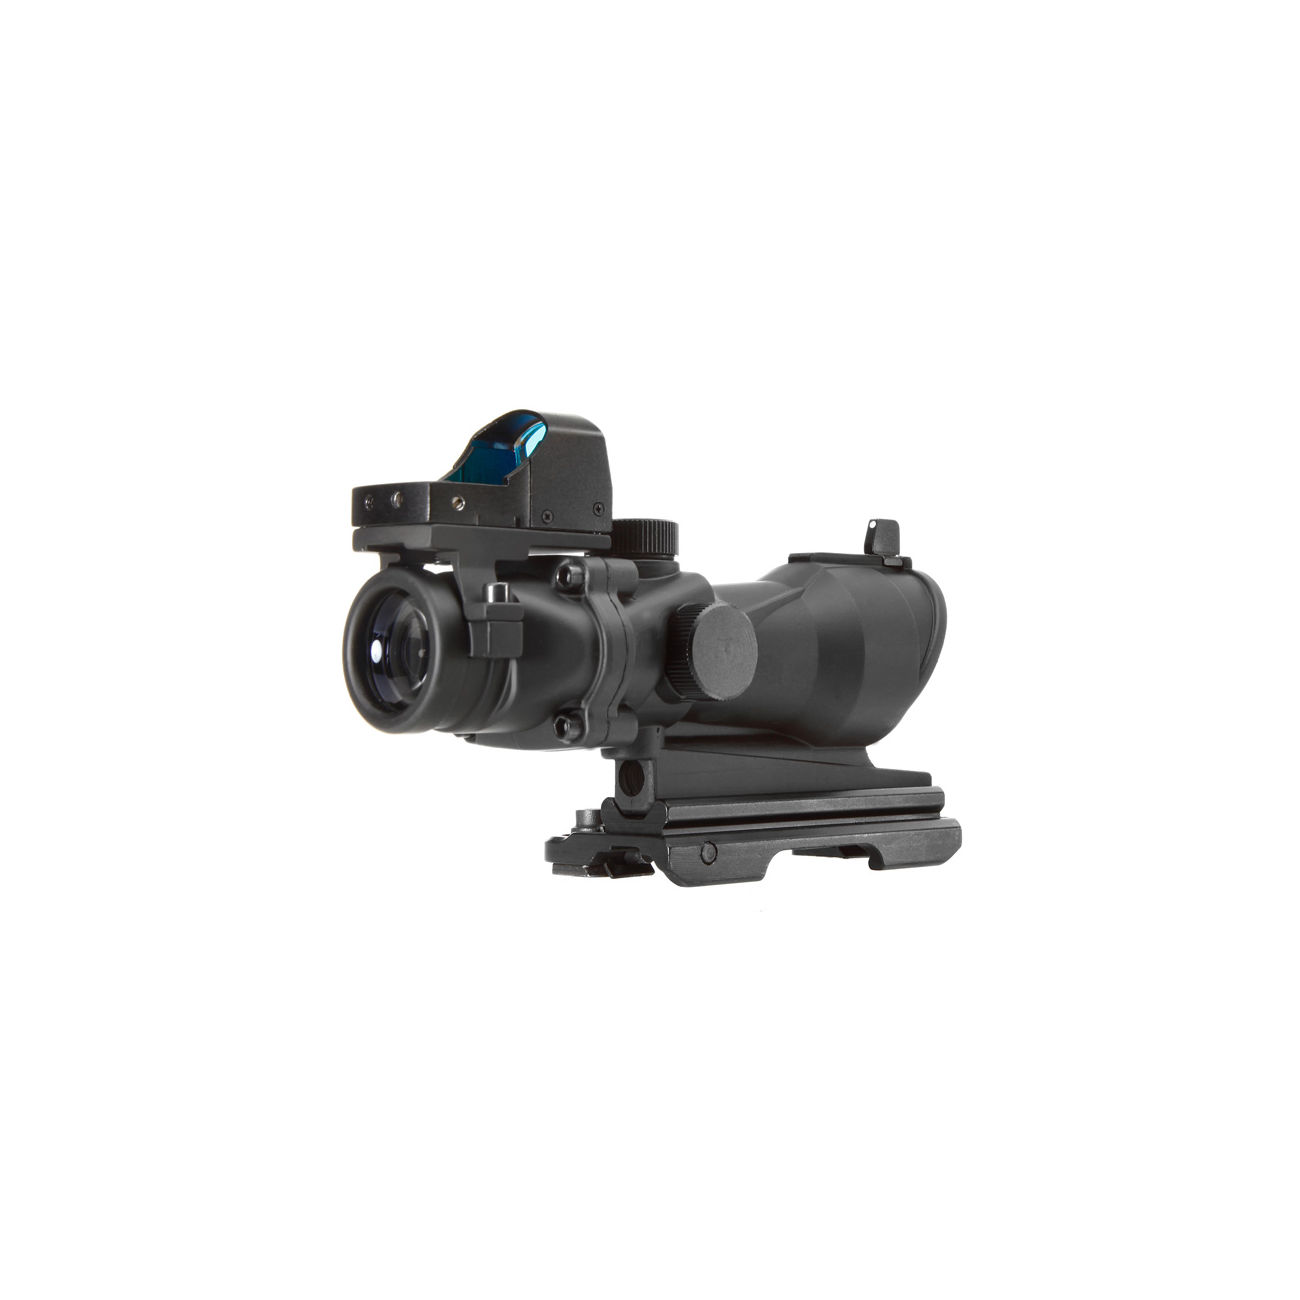 Aim-O TA01 Style Scope 4x32 QD-Mount mit Mini RedDot Visier schwarz 5316-BK 3